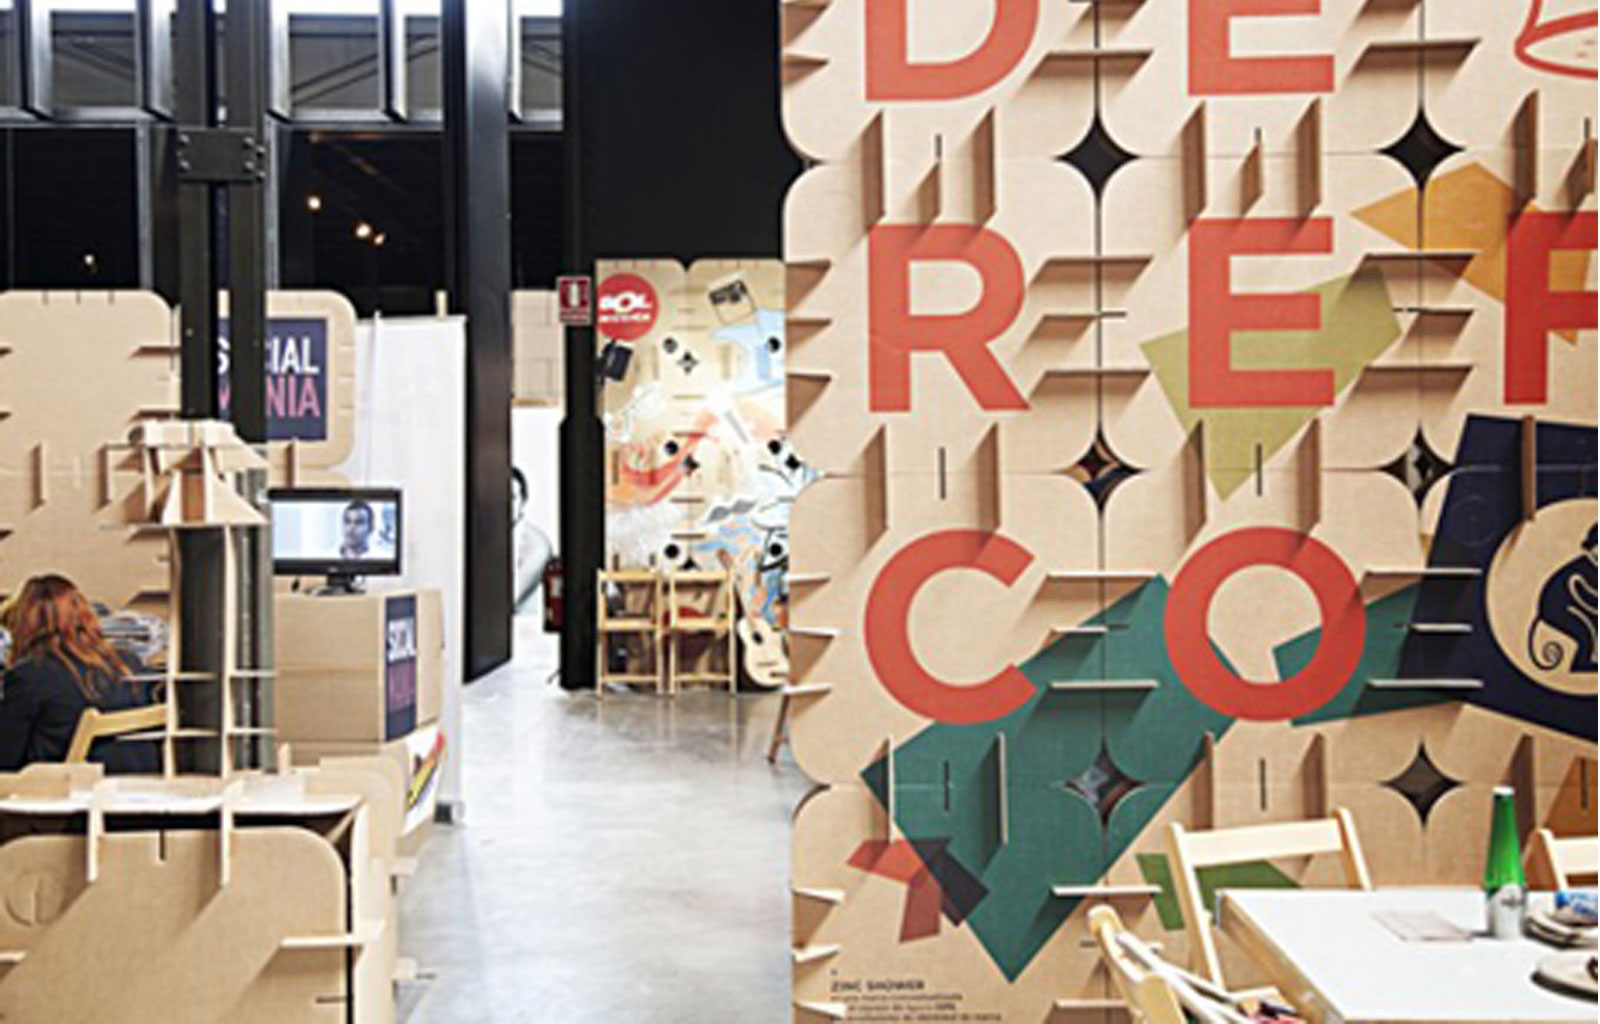 Decoraci n y estilismo de interiores ied summer school - Estudios de decoracion ...